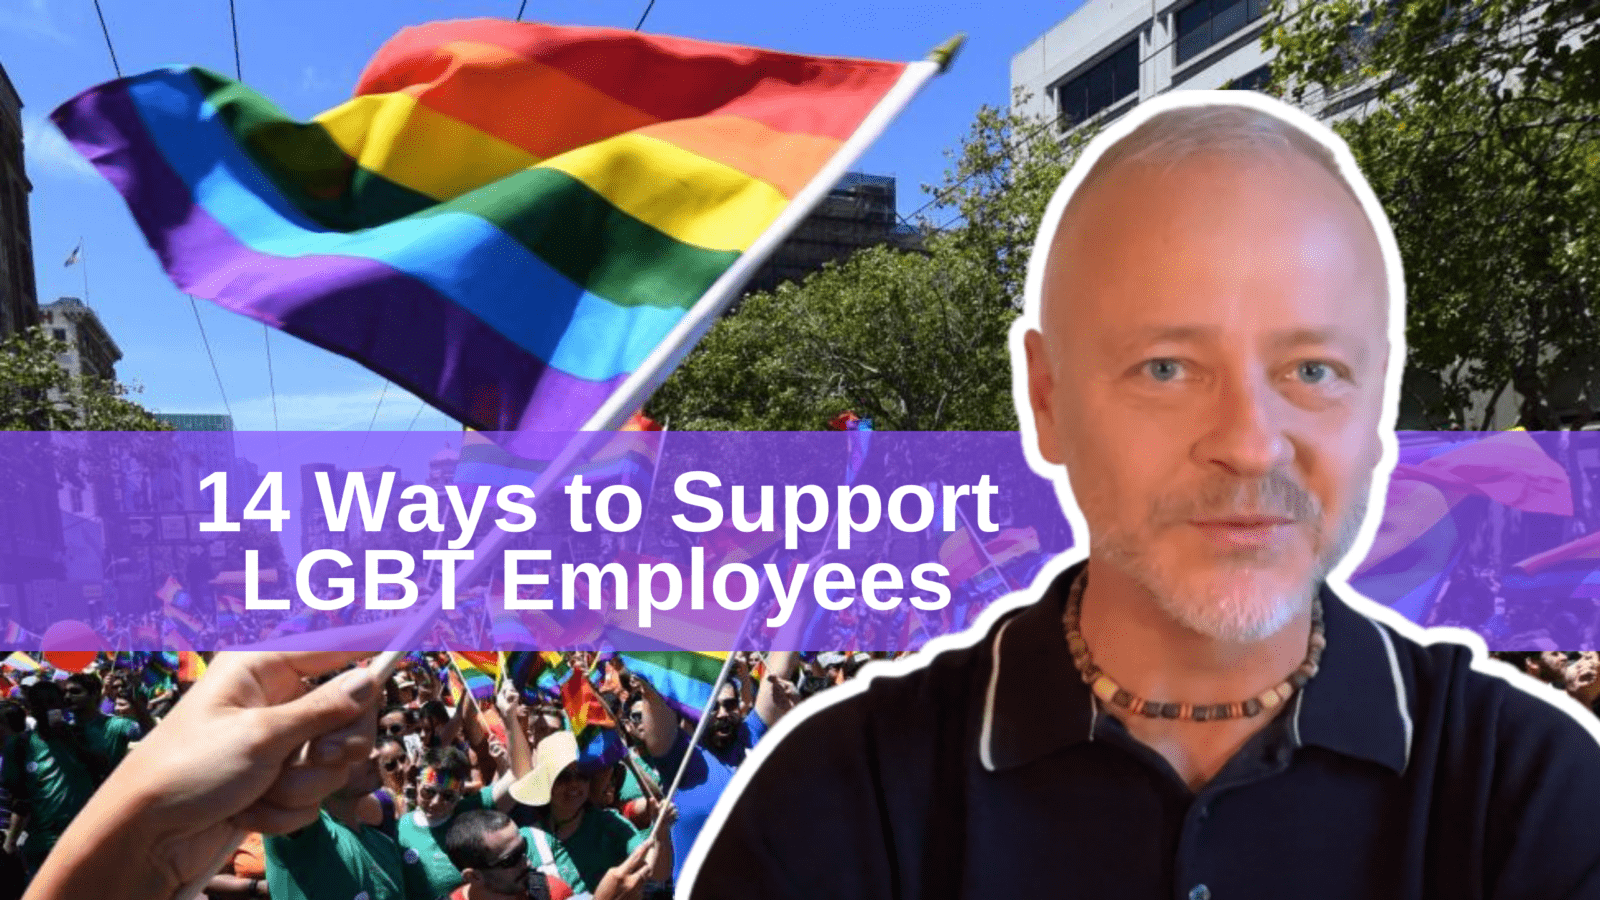 14 Ways to Support LGBT Employees - Dennis Velco - OutBuro - Employee Engagement Satisfaction Talent Acquisition Recriuting Recruitment Marketing Job Seeker Canidate Attraction Profressional Community